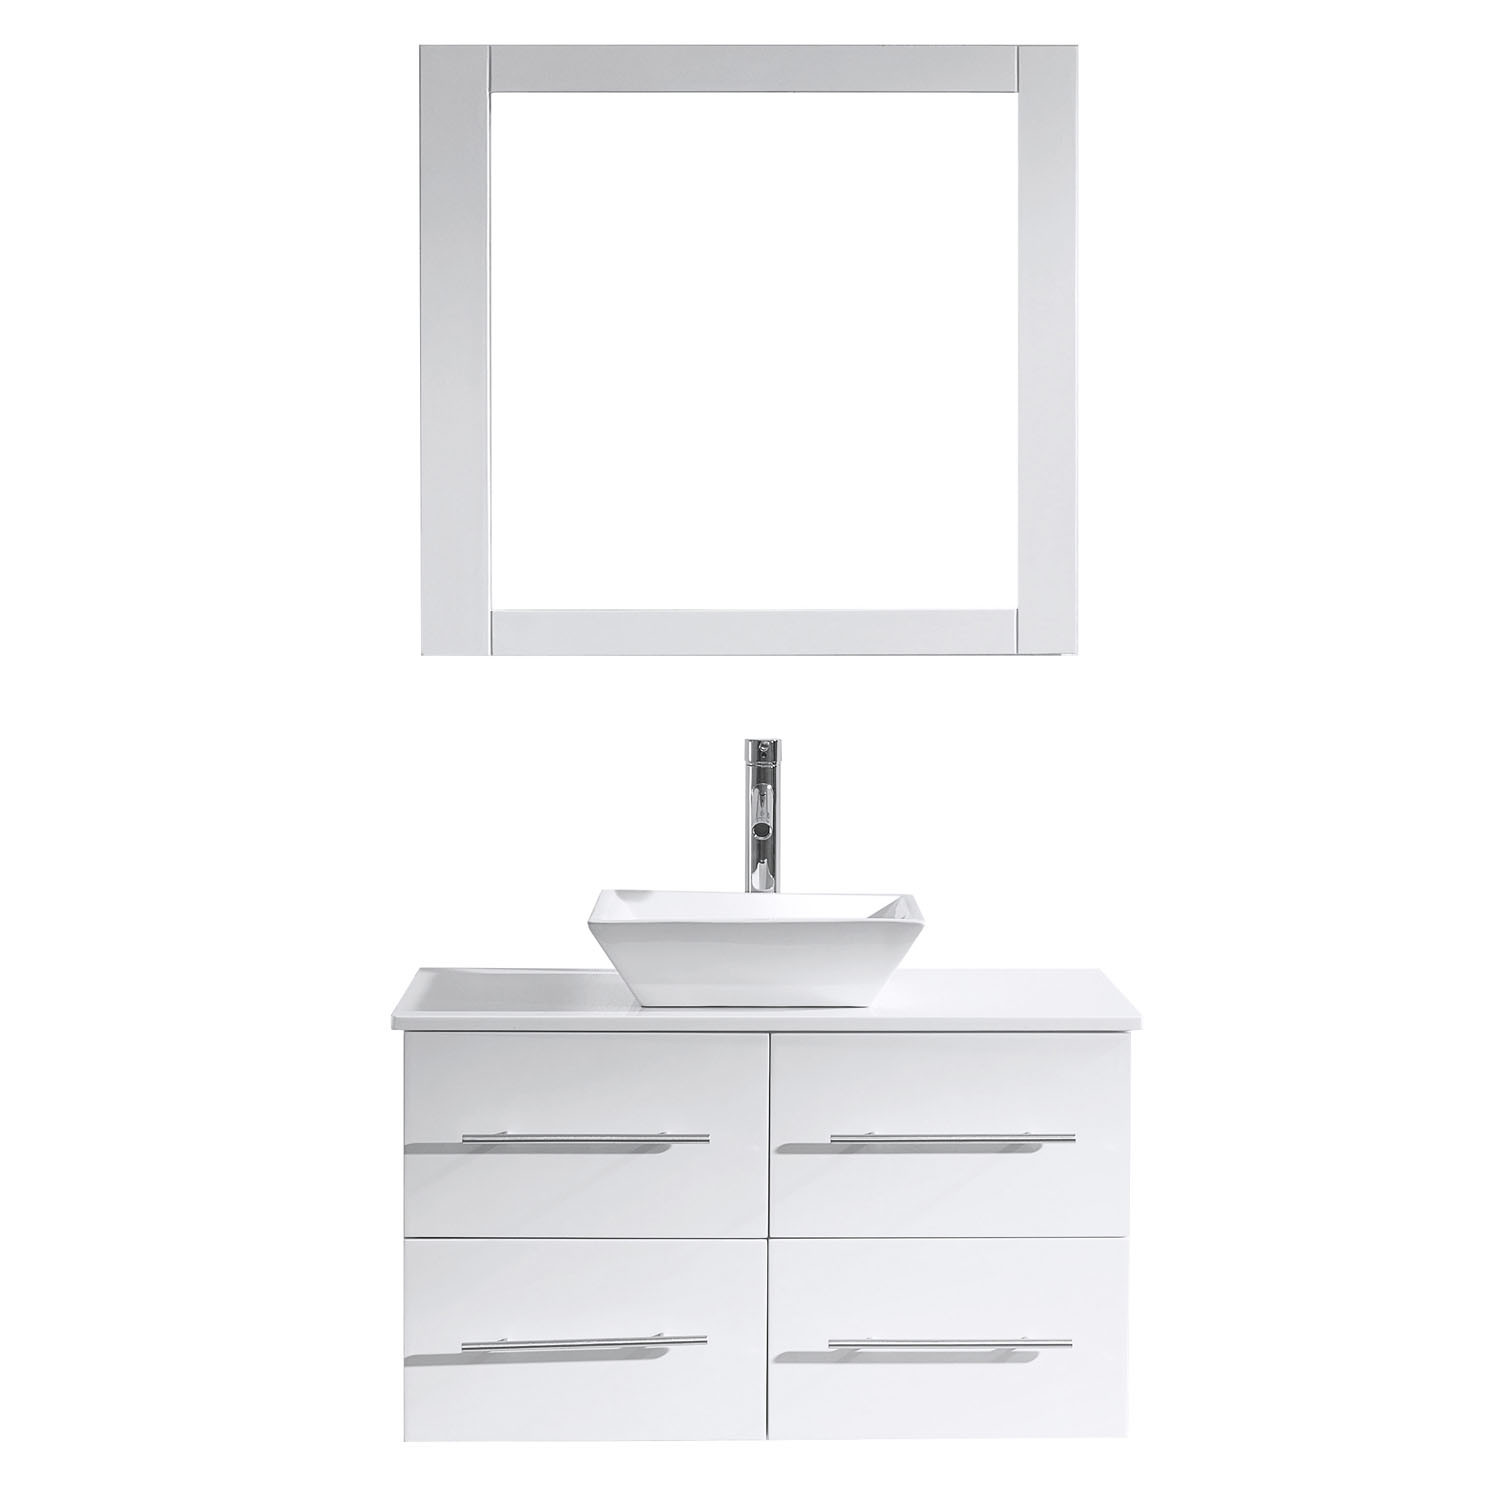 Virtu MS-565-S-WH-001 White Marsala 35 Inch Single Bathroom Vanity Set With Engineered Stone Top